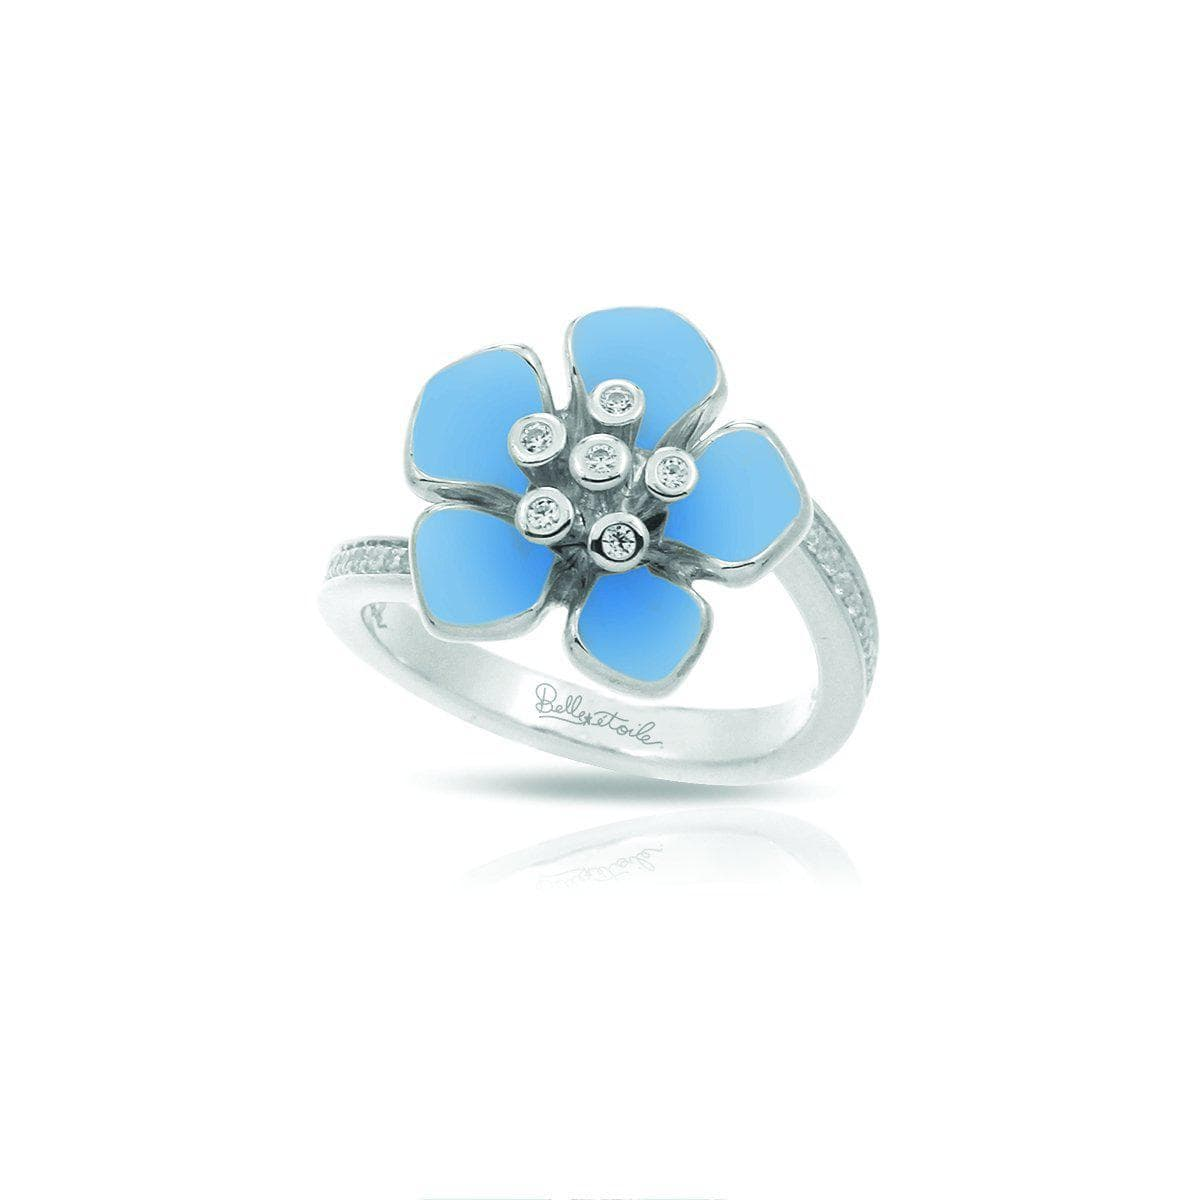 Forget-Me-Not Serenity Blue Ring-Belle Etoile-Renee Taylor Gallery